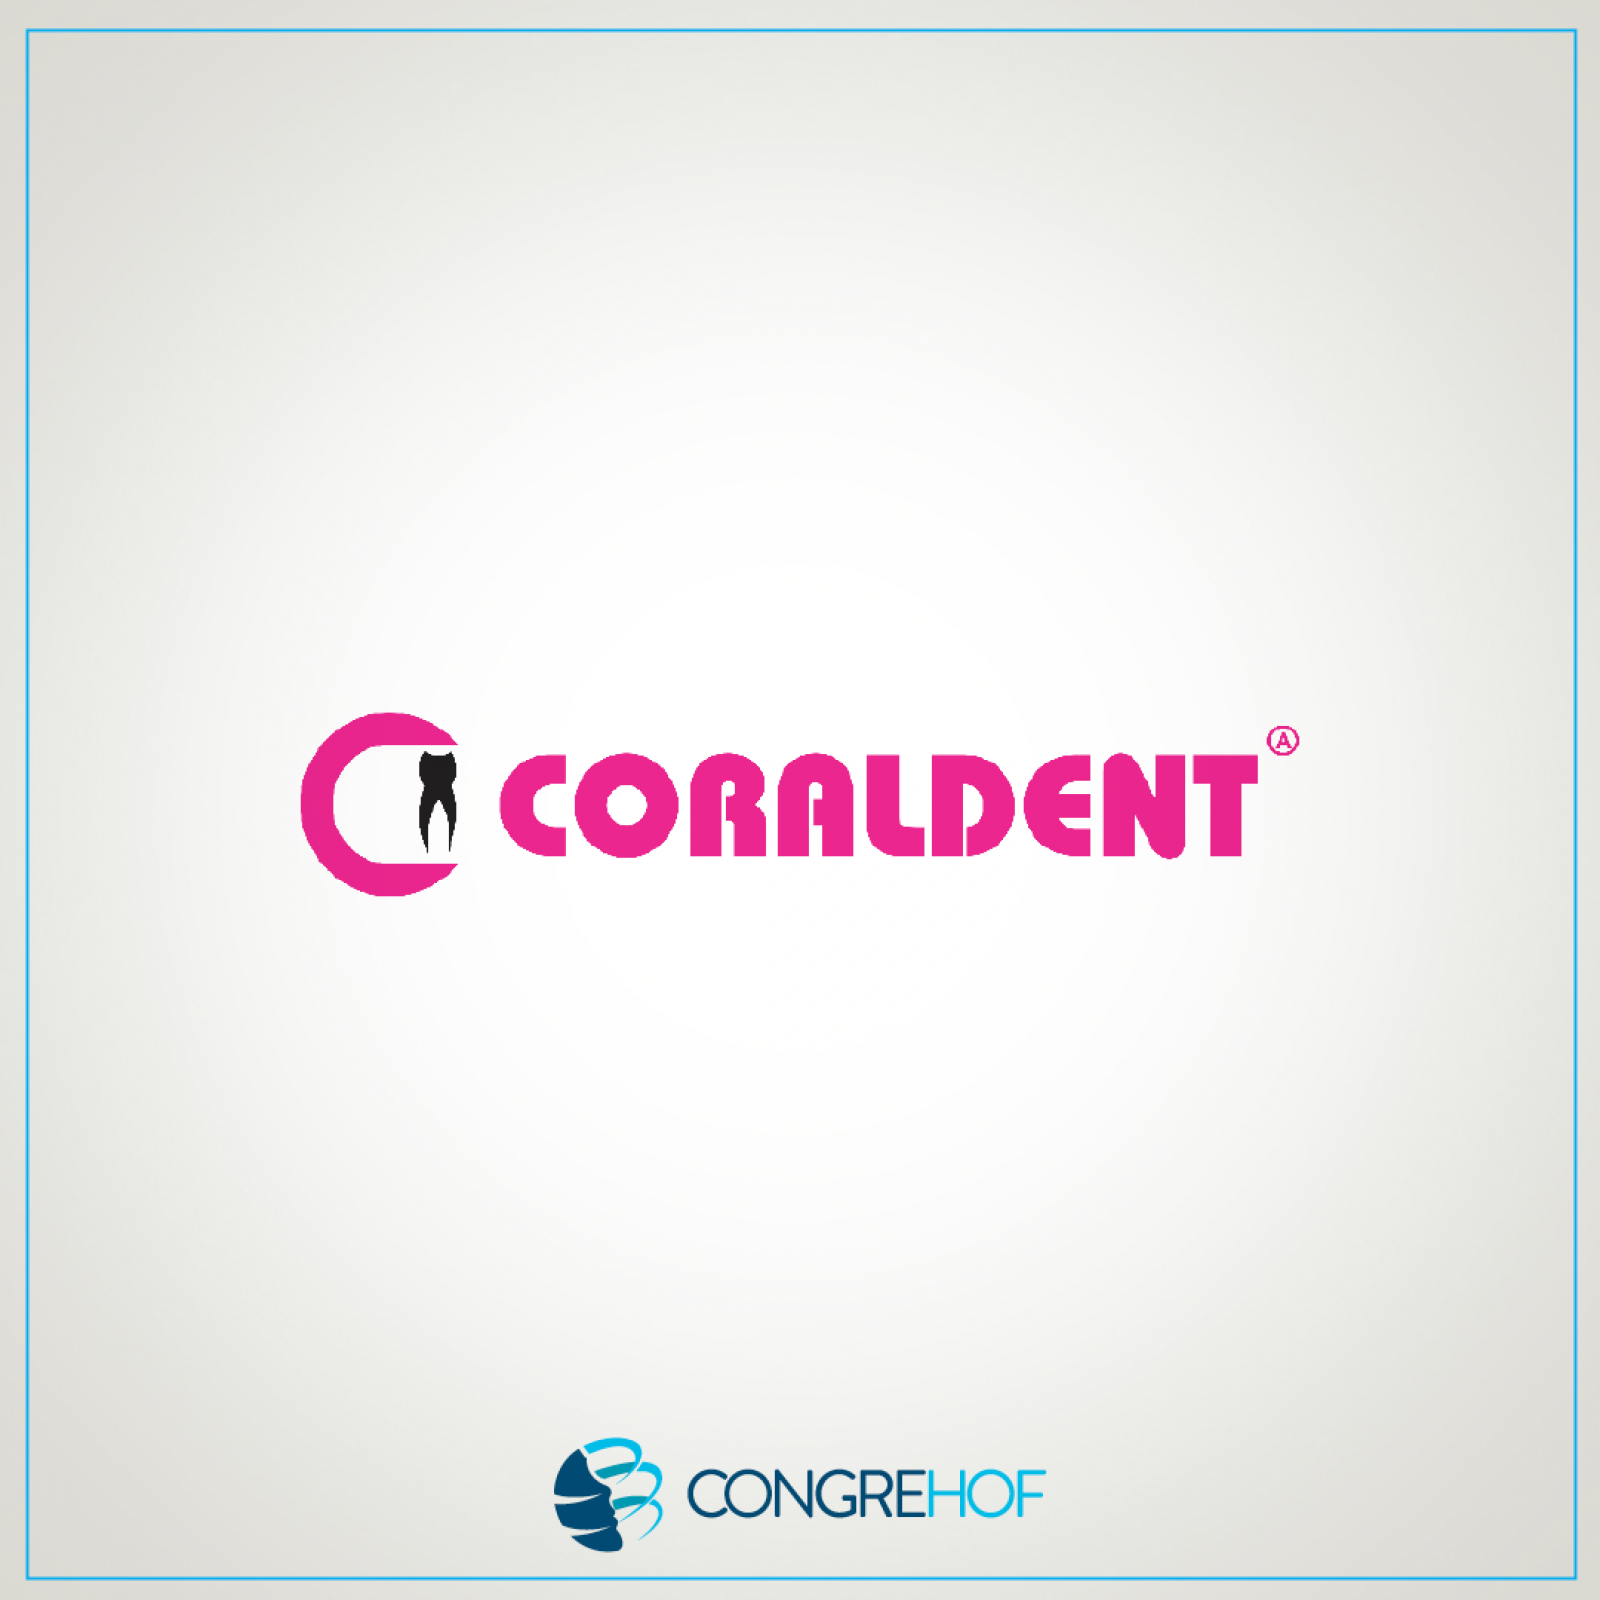 CORAL DENT